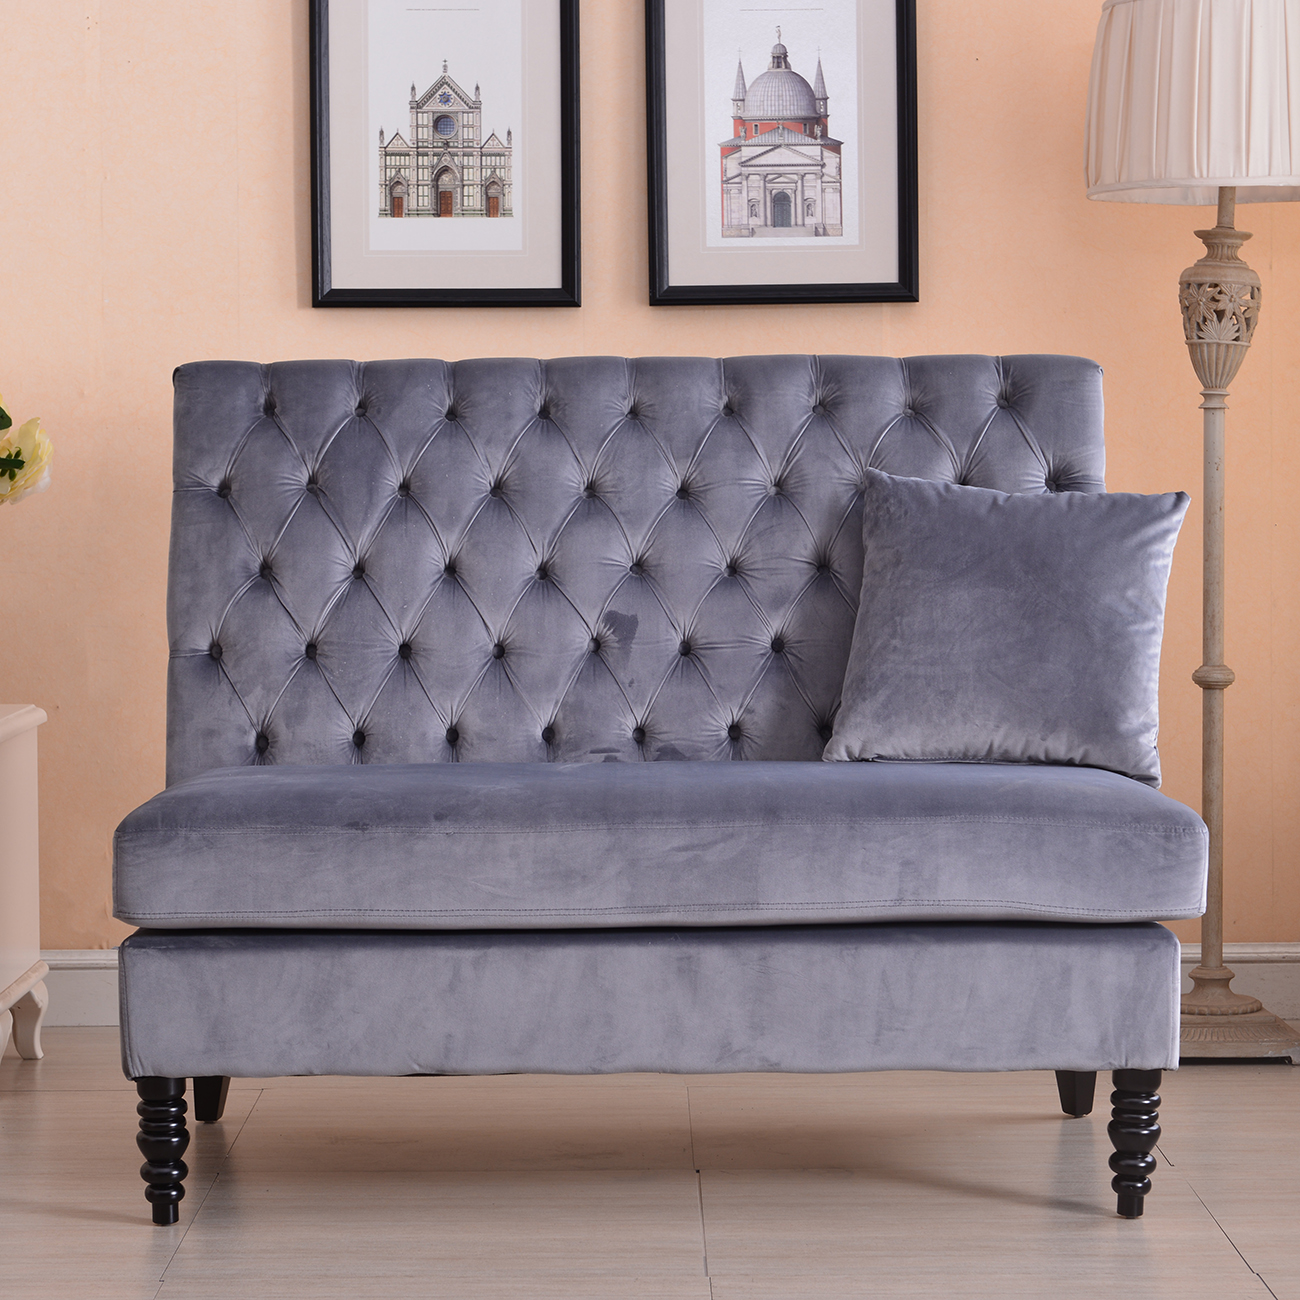 Velvet Modern Tufted Settee Bench Bedroom Sofa High Back Love Seat ...